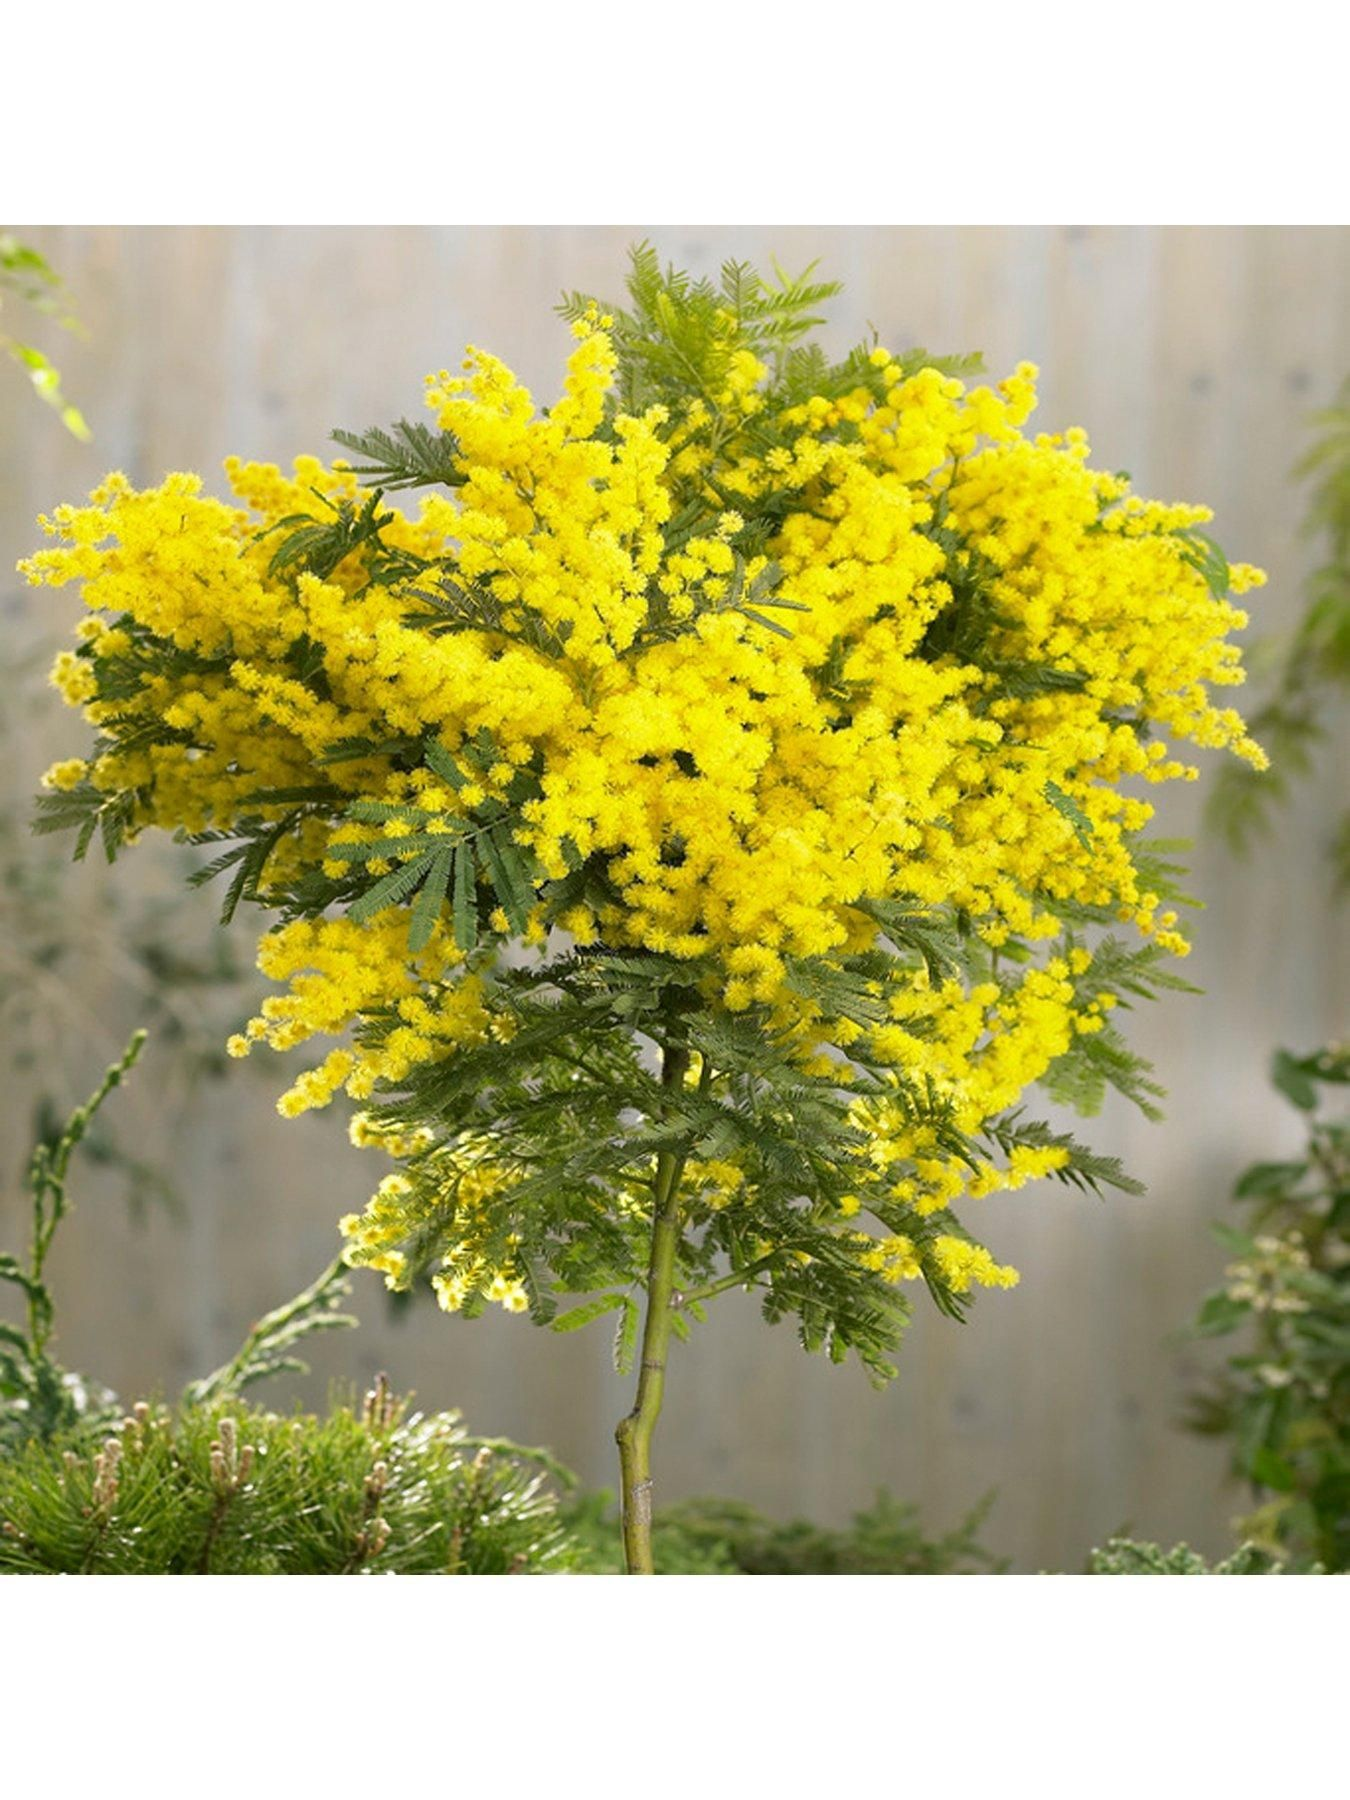 Acacia Mimosa Standard 90cm Tall One Colour 90cm Acacia Colour Mimosa Standard Tall In 2020 Mimosa Tree Yellow Flowers Home And Garden